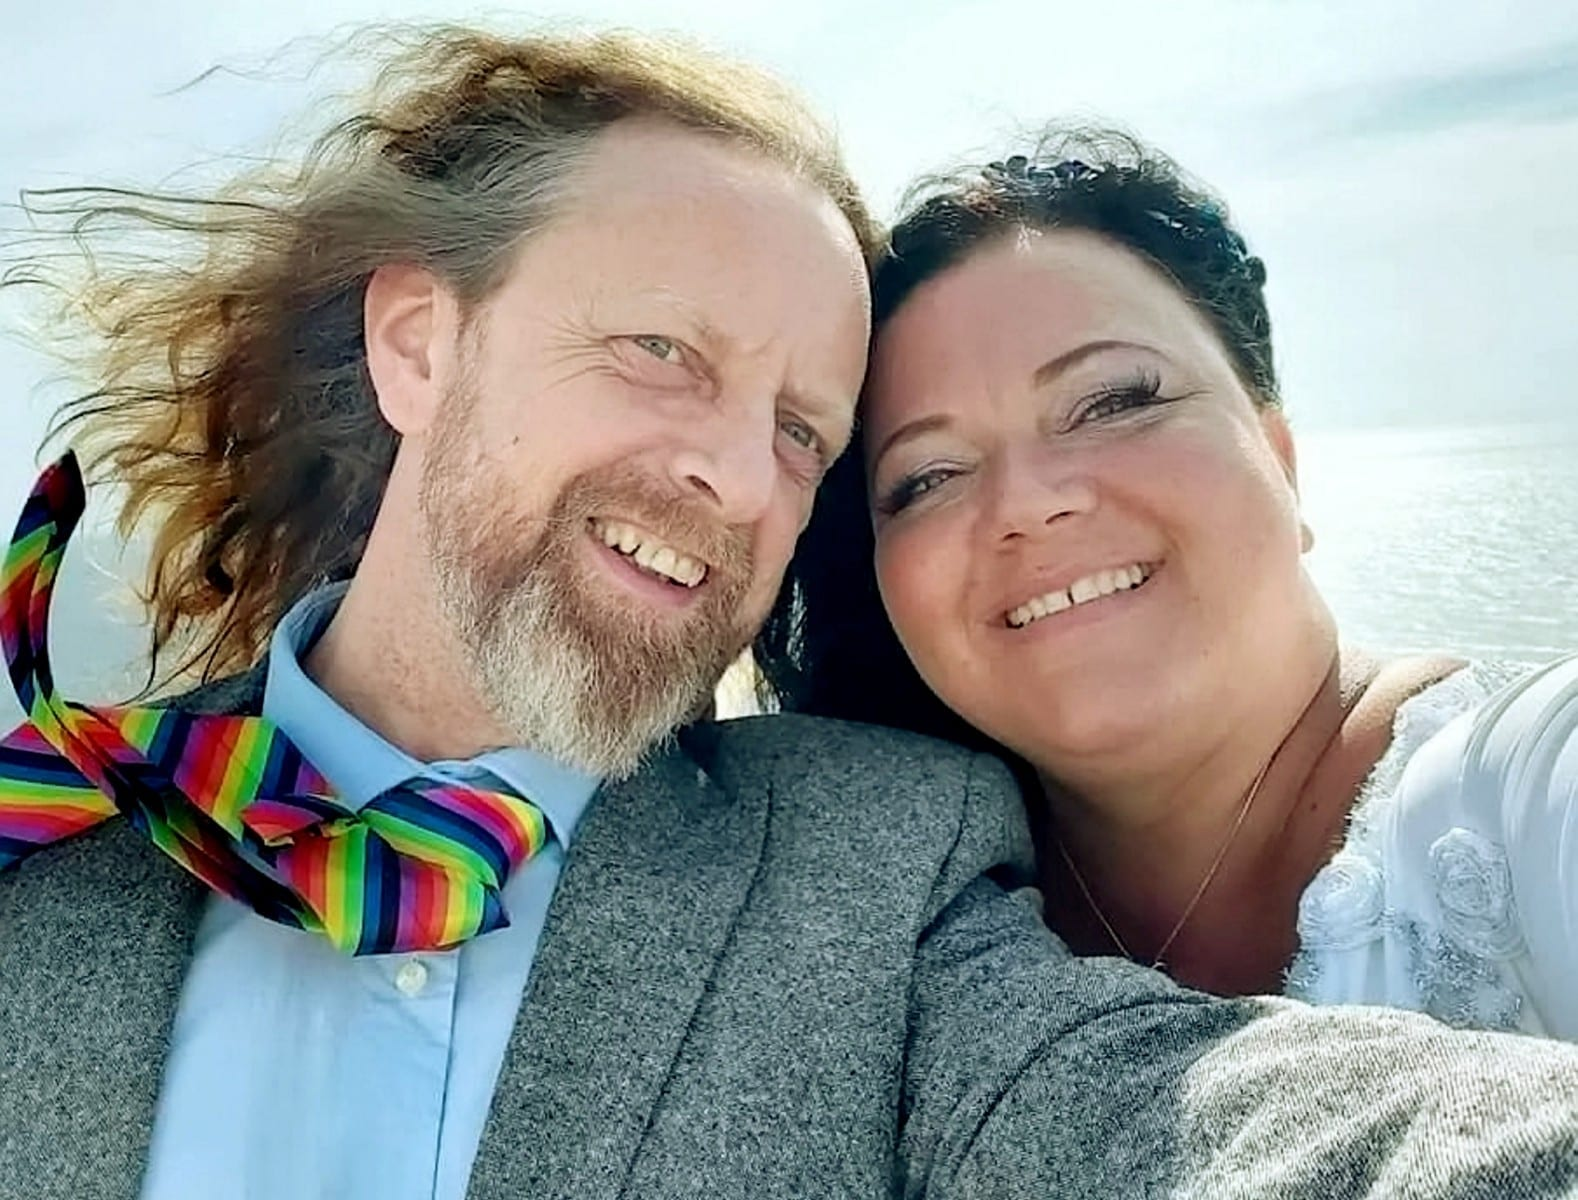 'I'm Ready To Start My New Life With My Soulmate' -Couple Marry After They Found Love While Grieving for Their Long-Term Partners - Who Died Just Six Days Apart